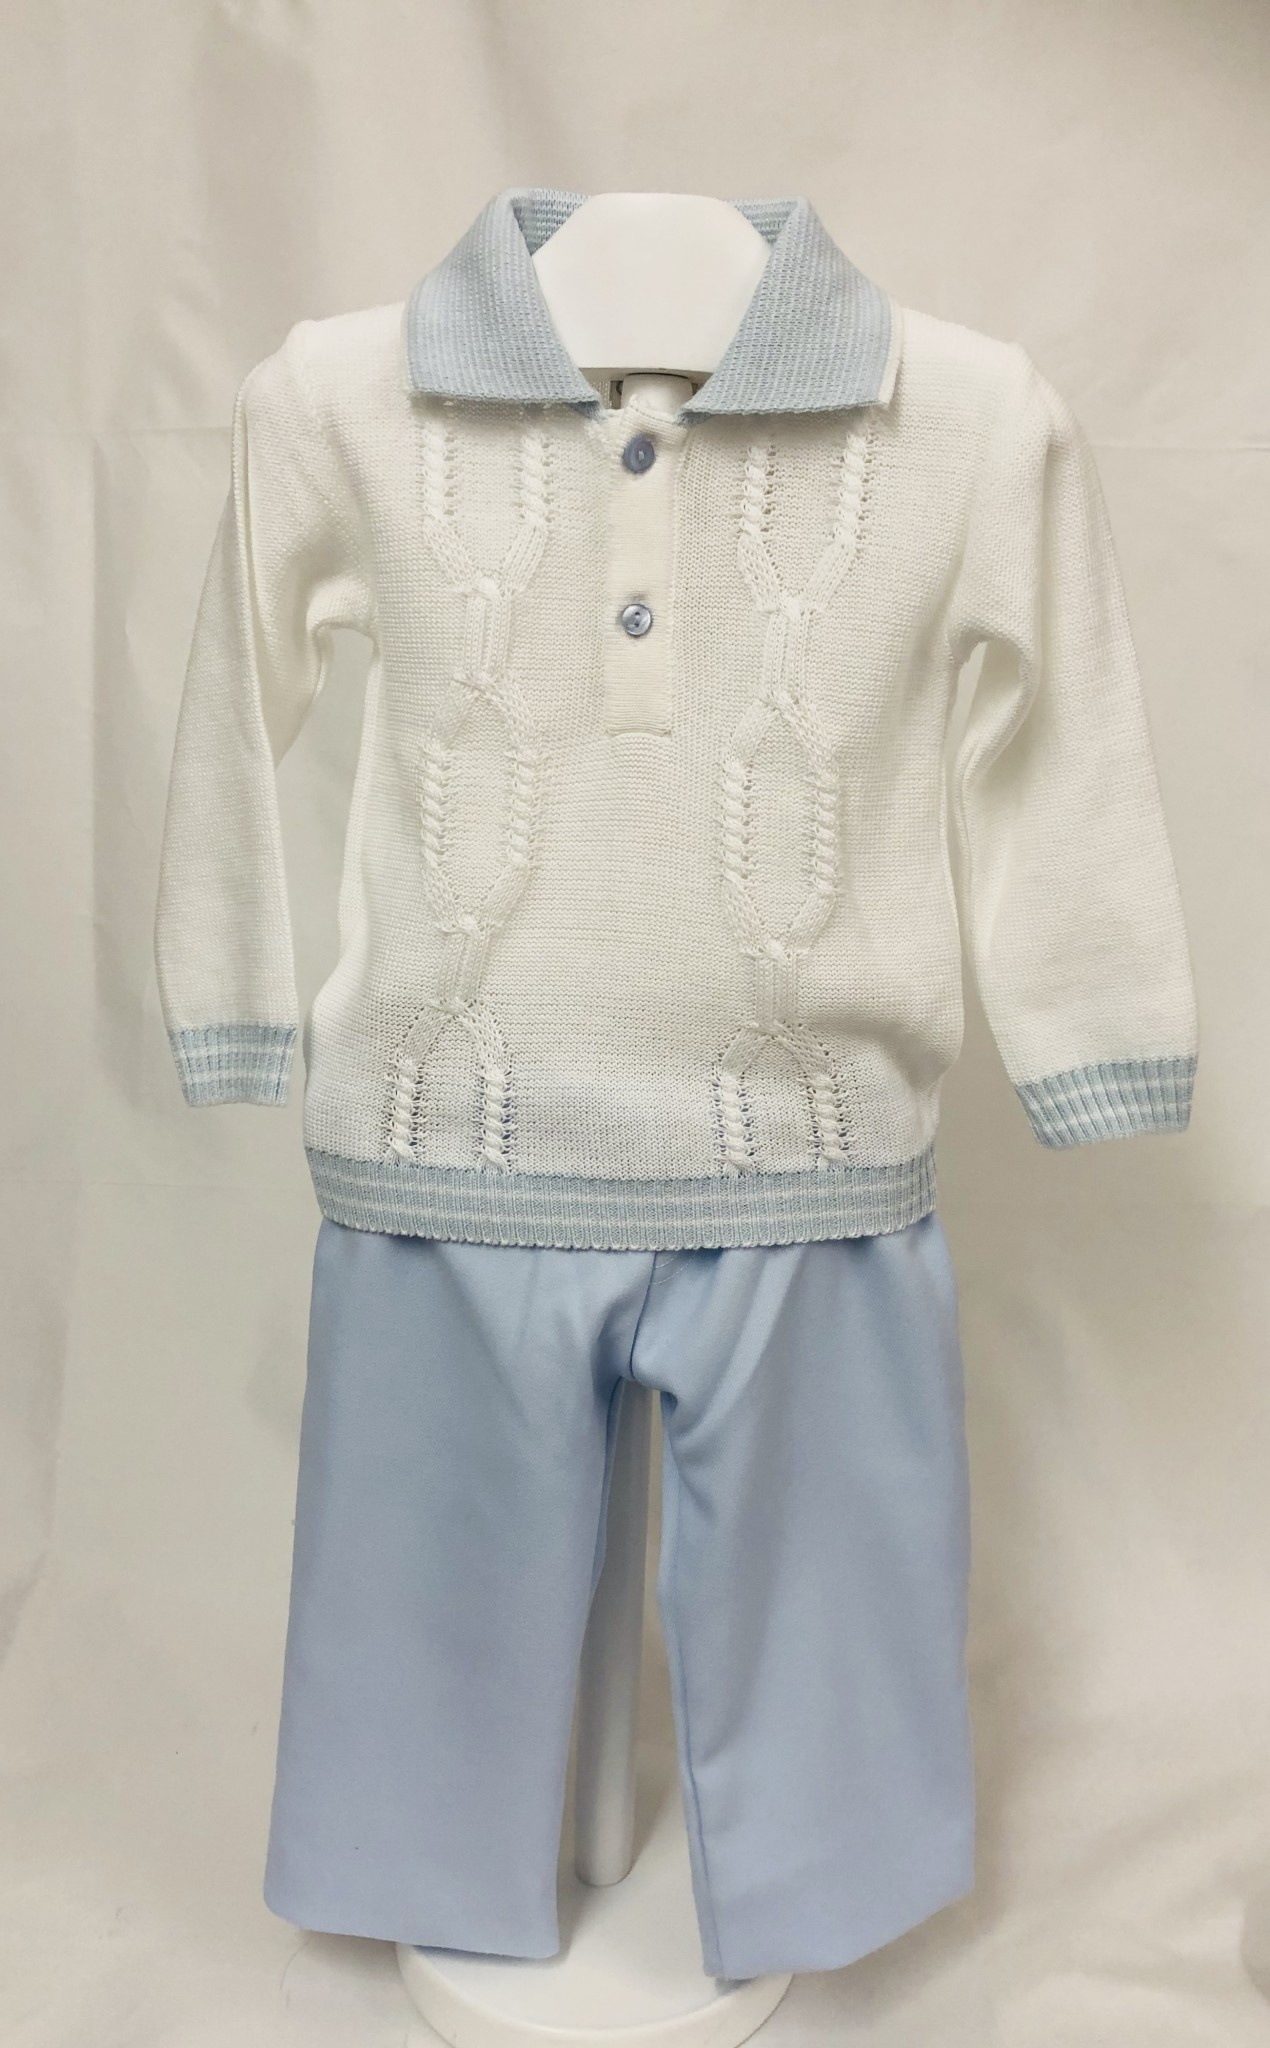 Pretty Originals Pretty Originals JPL8185 Blue/White Knit Top and Trouser Set